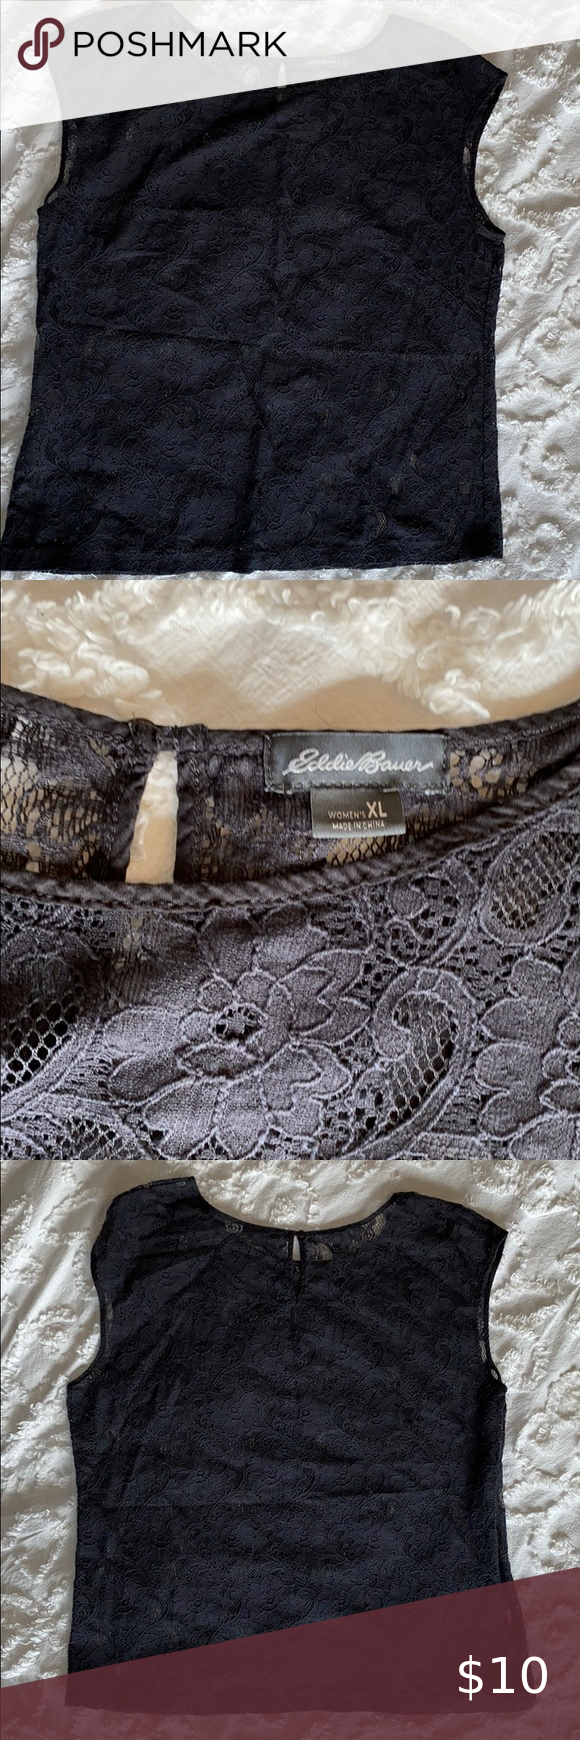 Eddie Bauer, black lace shirt in 2020 Black lace shirt